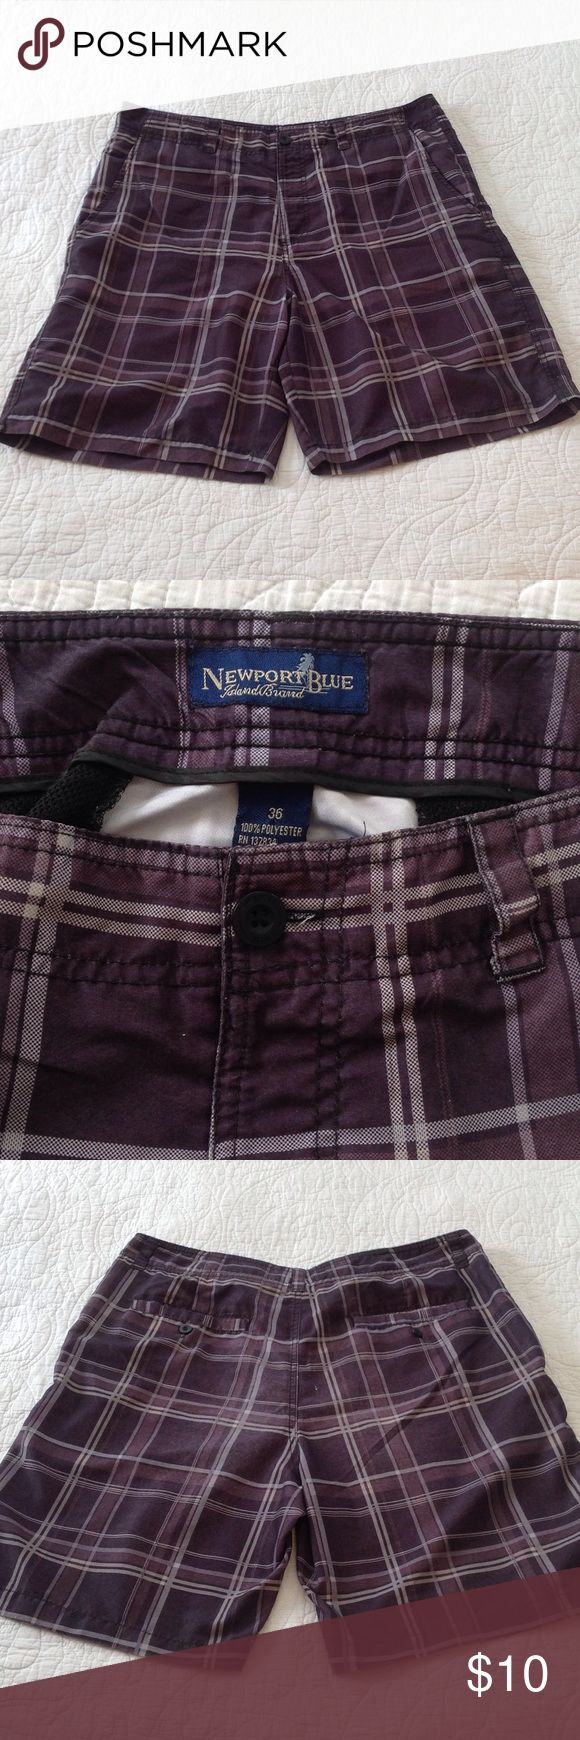 Men's Plaid Gray Shorts Negotiable. Tiny minor flaw on back (as pictured). Newport Blue Shorts Flat Front